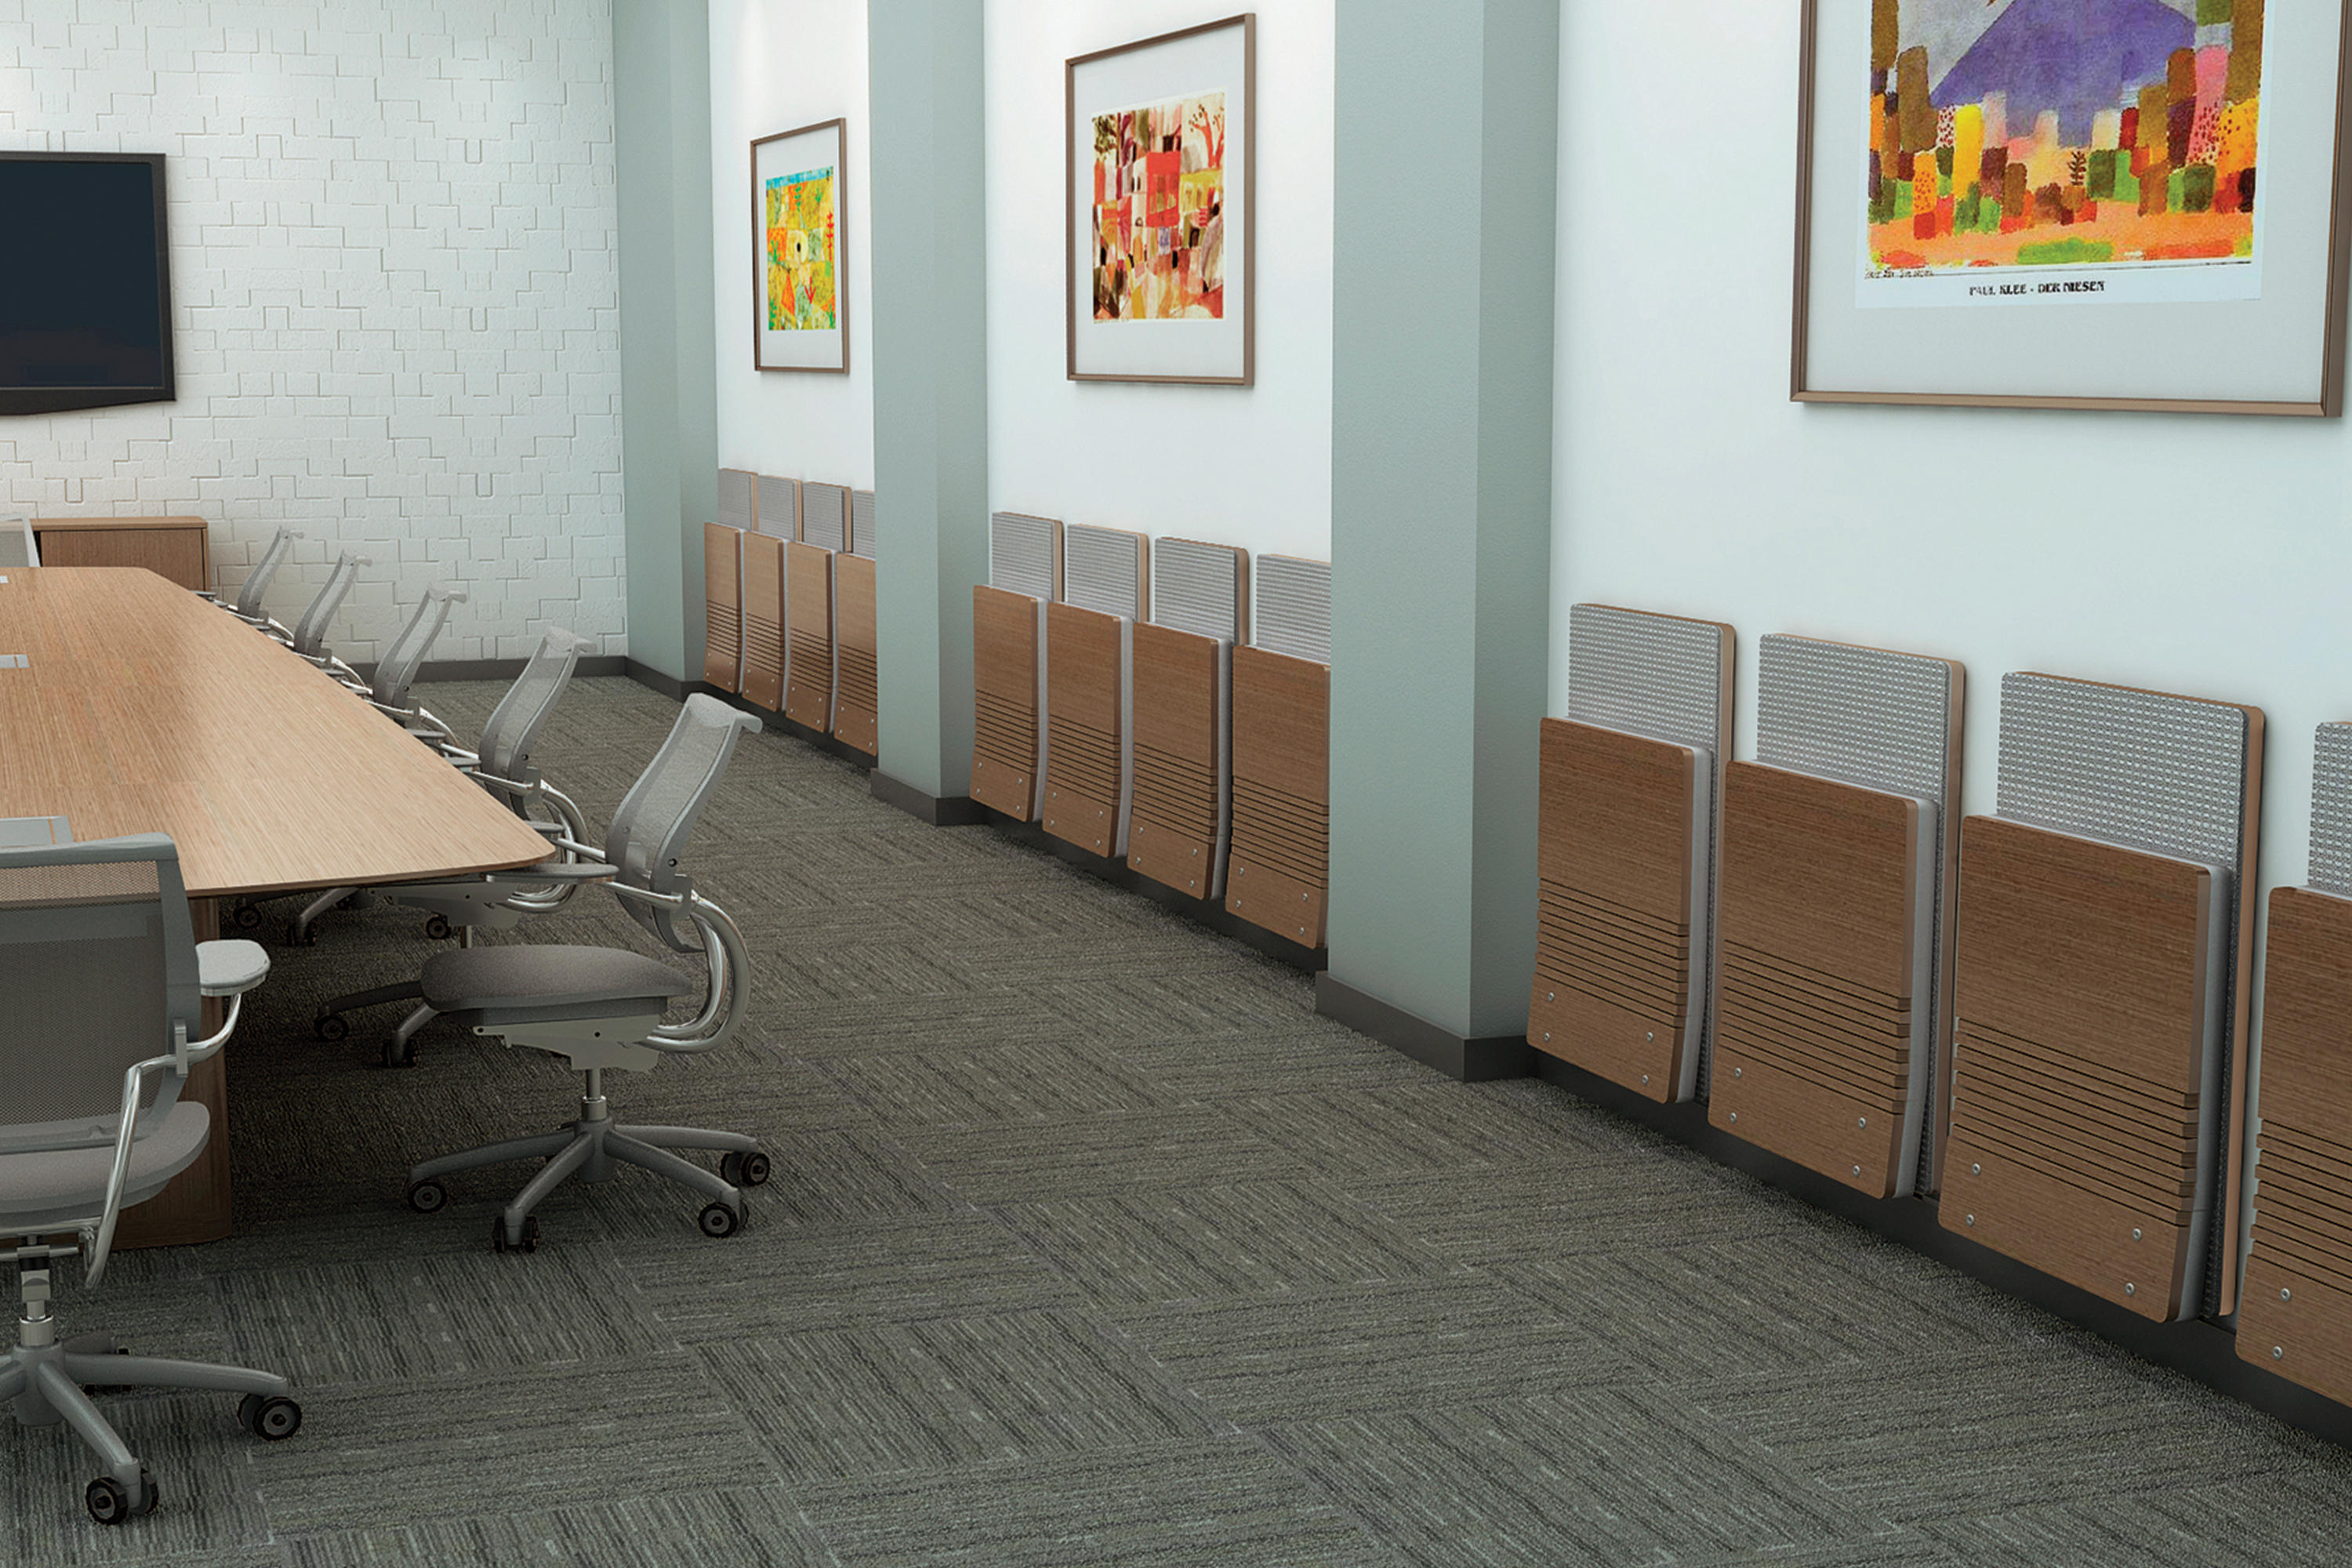 dcc89d20e JUMPSEAT™ WALL - Chairs from Sedia Systems Inc.